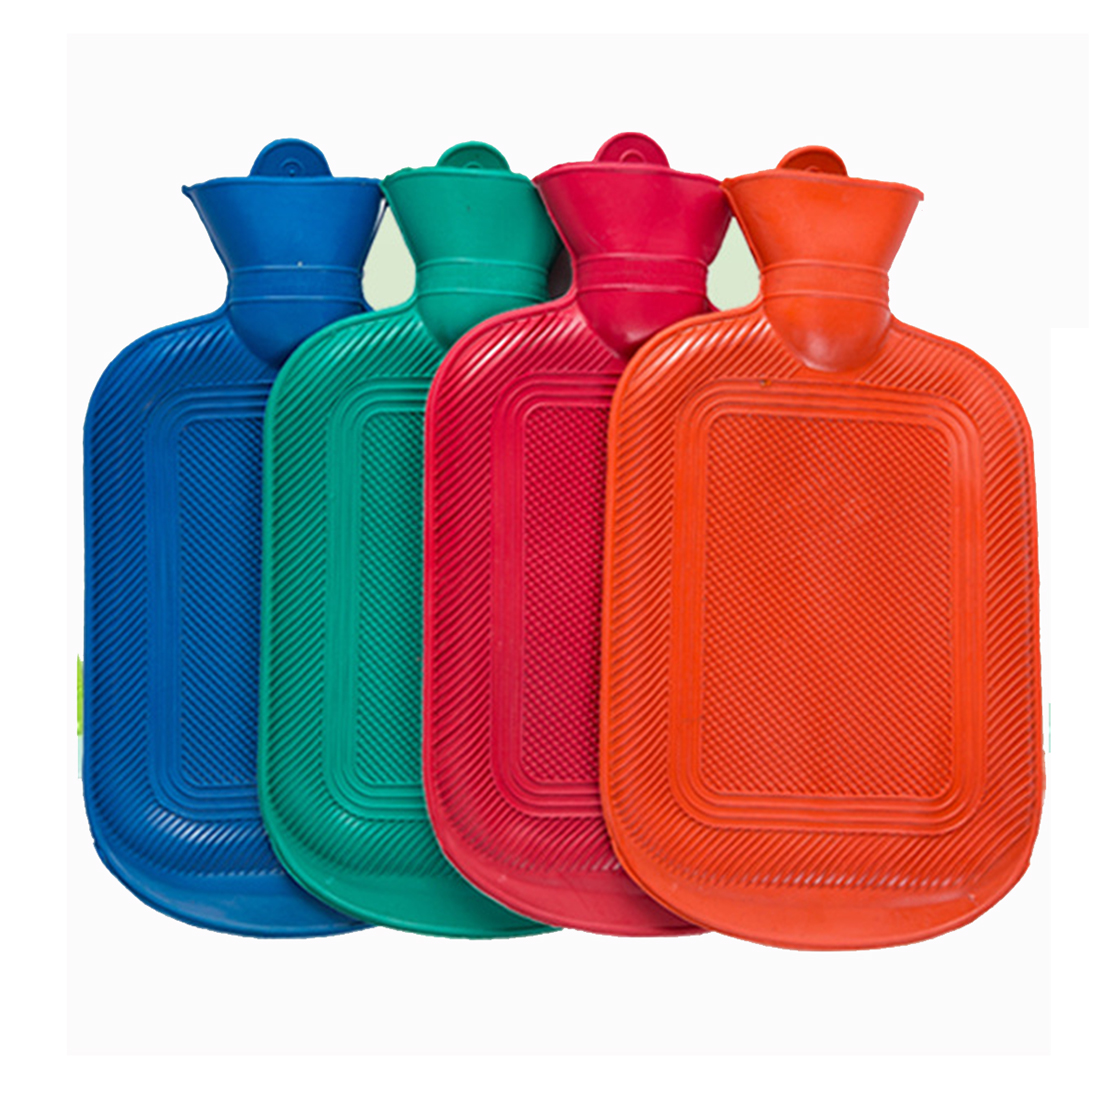 New Water Bottle Thick High Density Rubber Bag Hand Warming Water Bottles Winter Hot Water Bags Bottle random color ...